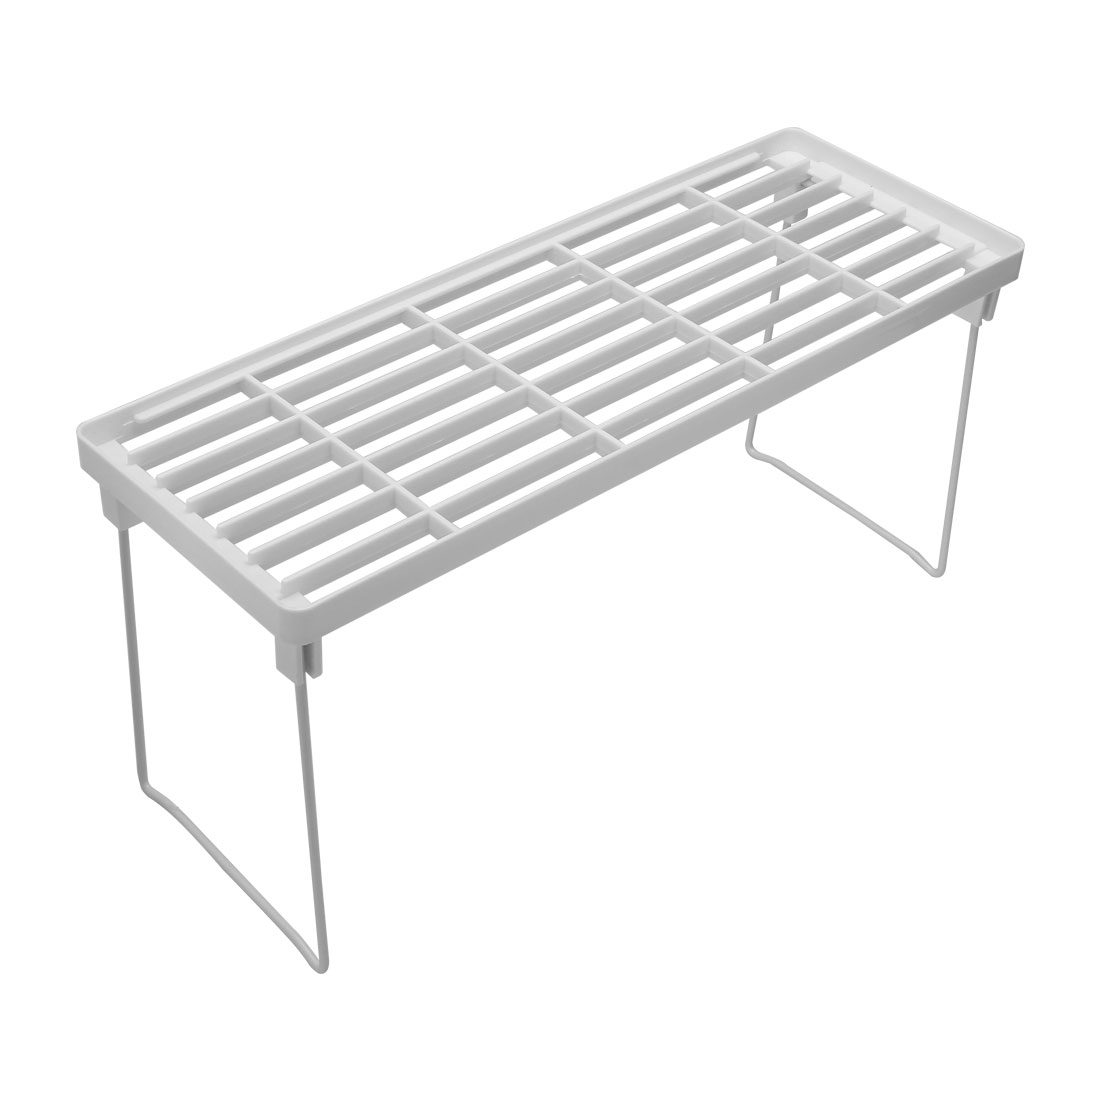 White Plastic Rectangle Net Design Mini Foldable Shelf Storage Rack Organizer